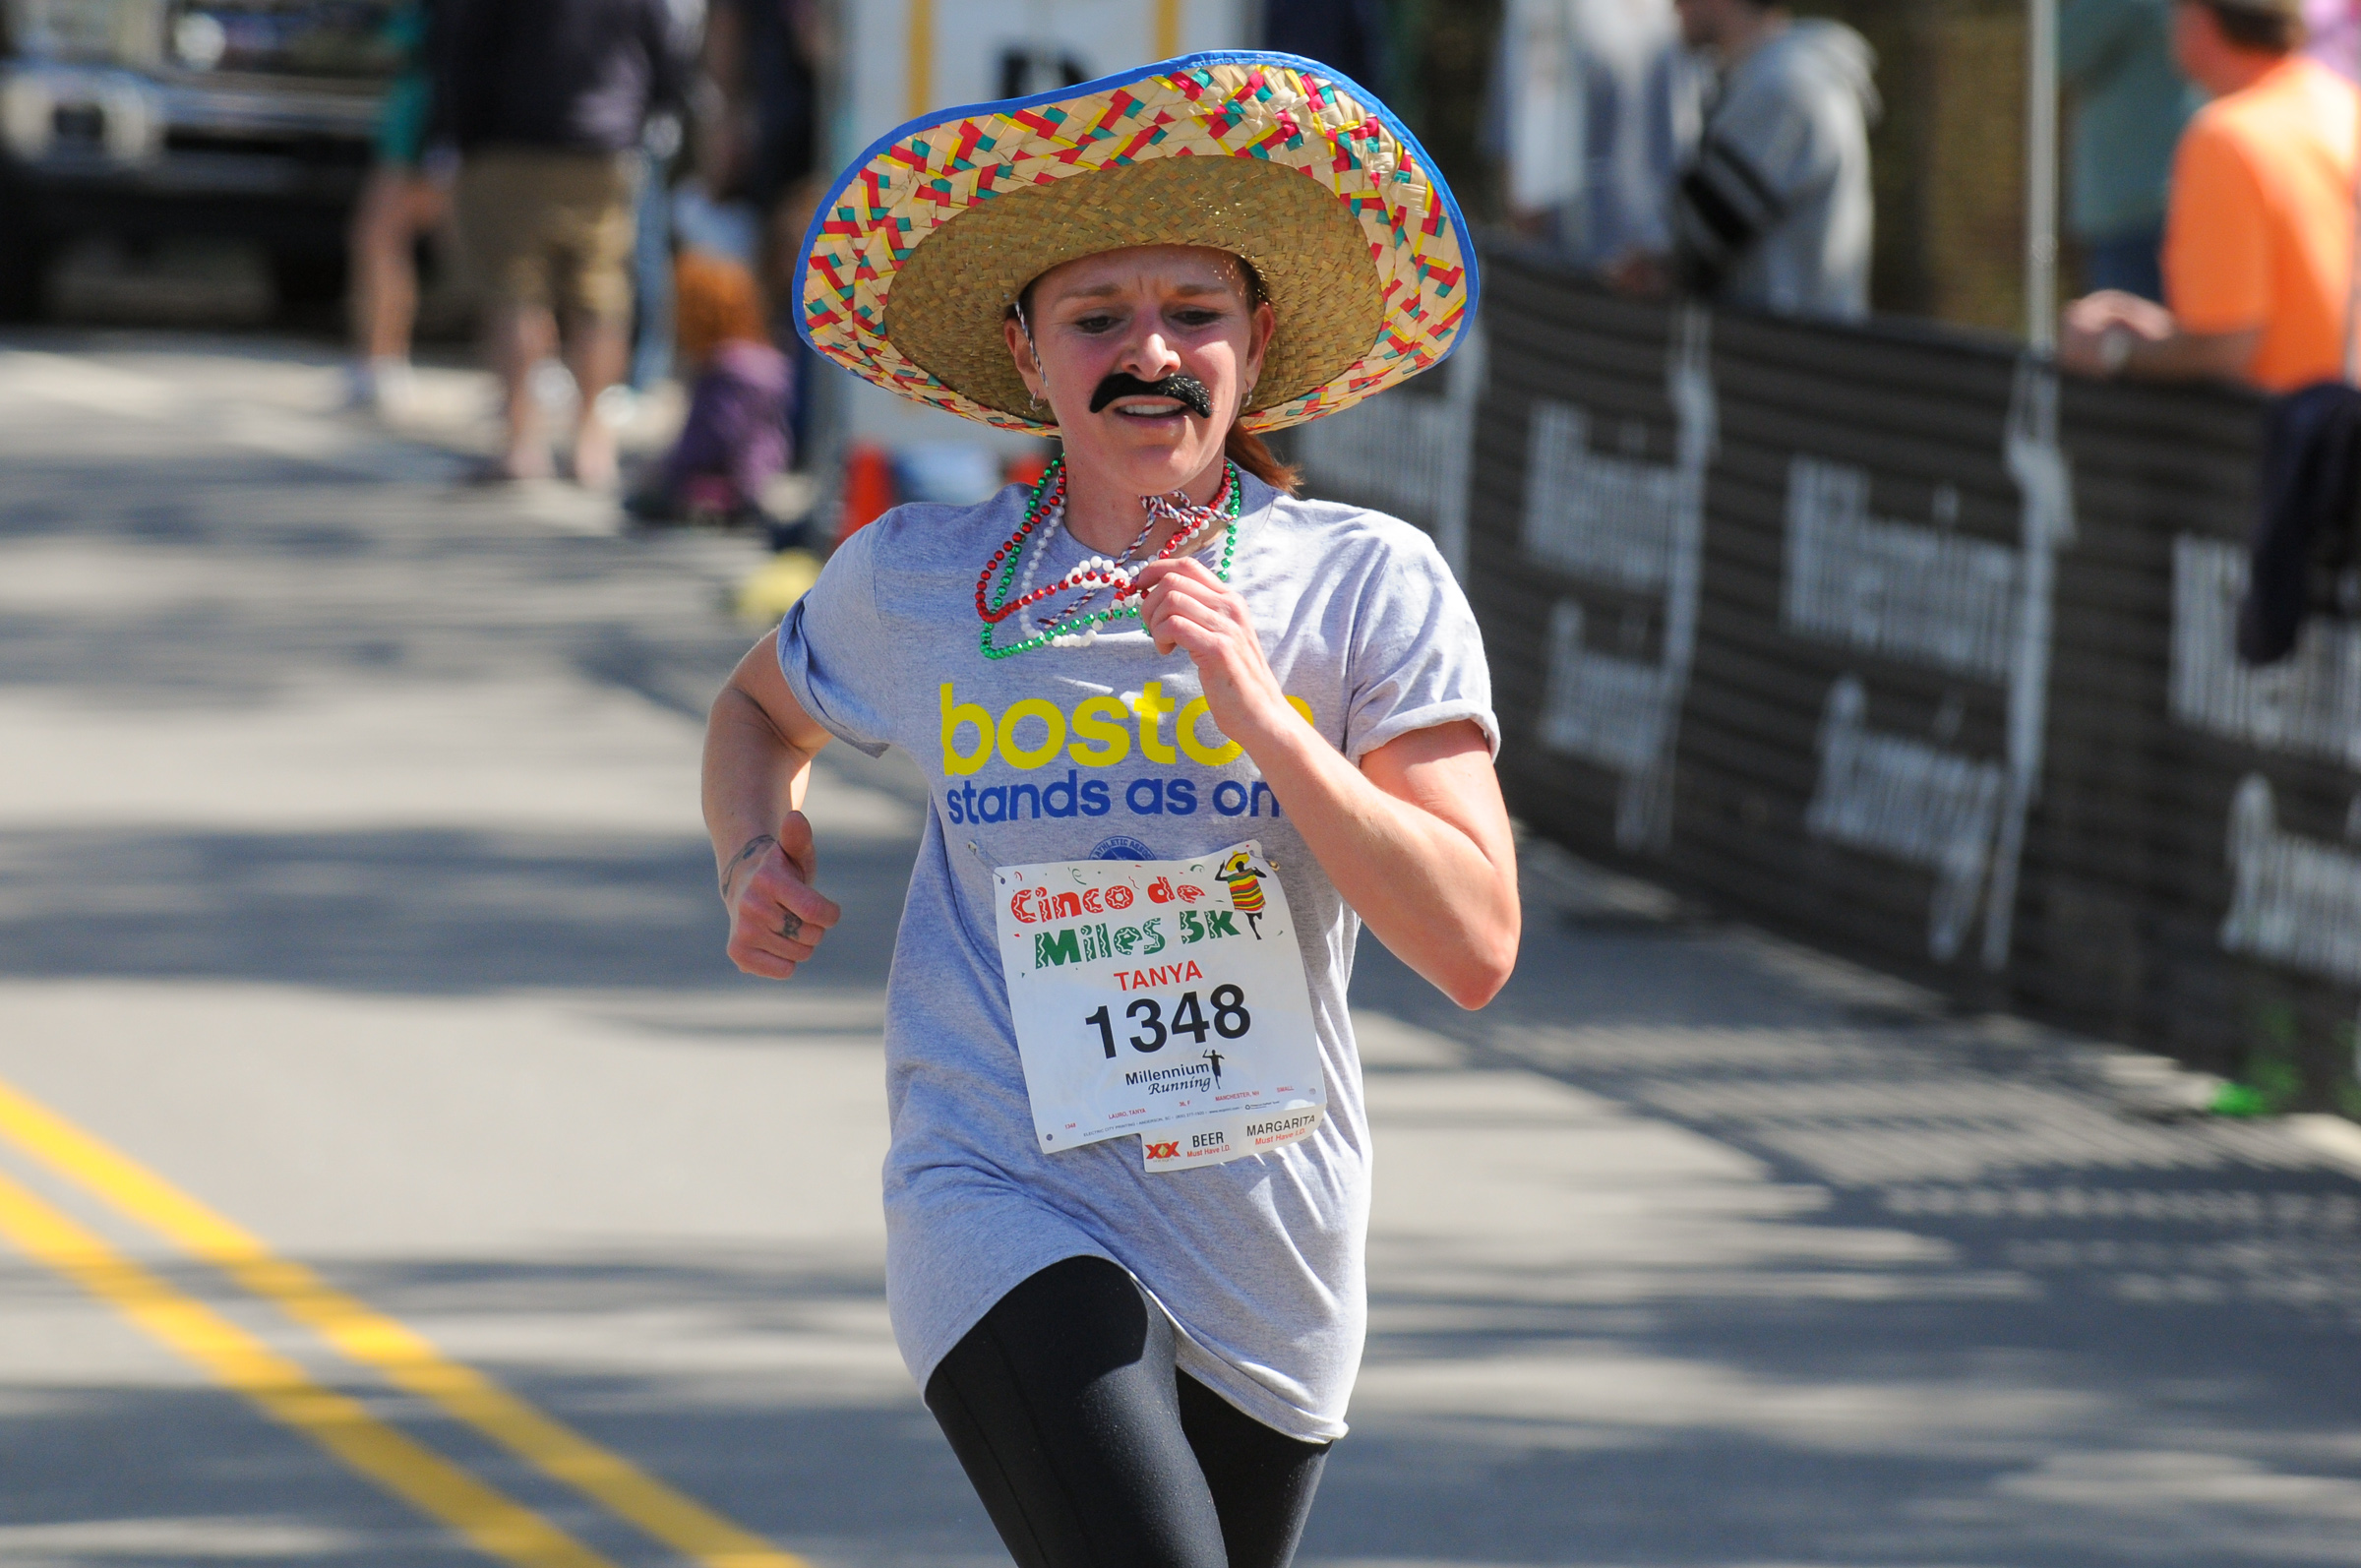 RESULTS: Cinco de Miles 5K 2013